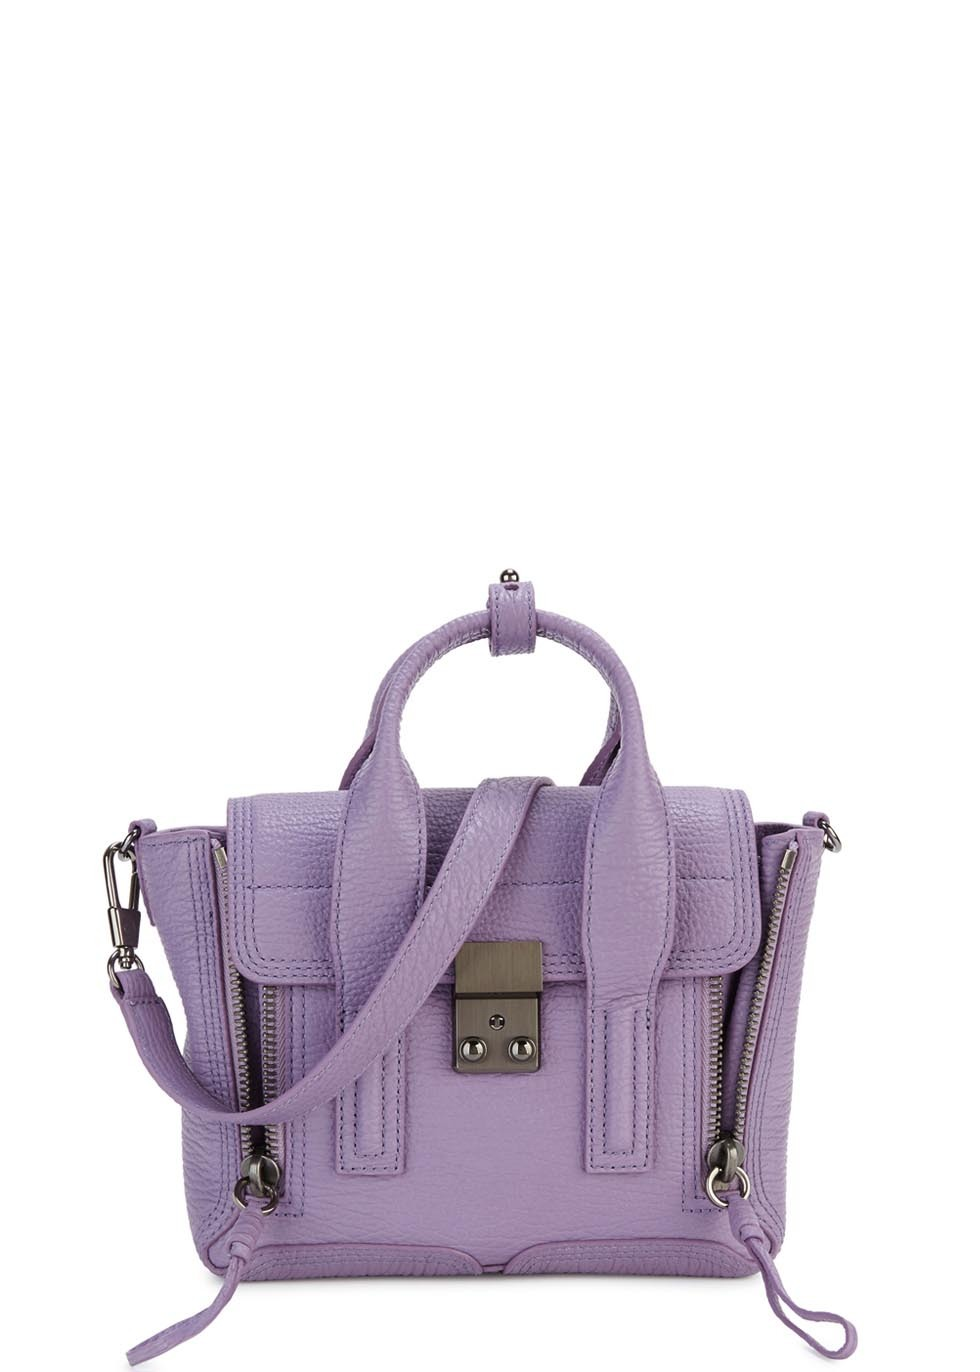 Pashli Mini Violet Leather Satchel - predominant colour: purple; type of pattern: standard; style: satchel; length: handle; size: standard; material: leather; pattern: plain; finish: plain; occasions: creative work; season: a/w 2015; wardrobe: highlight